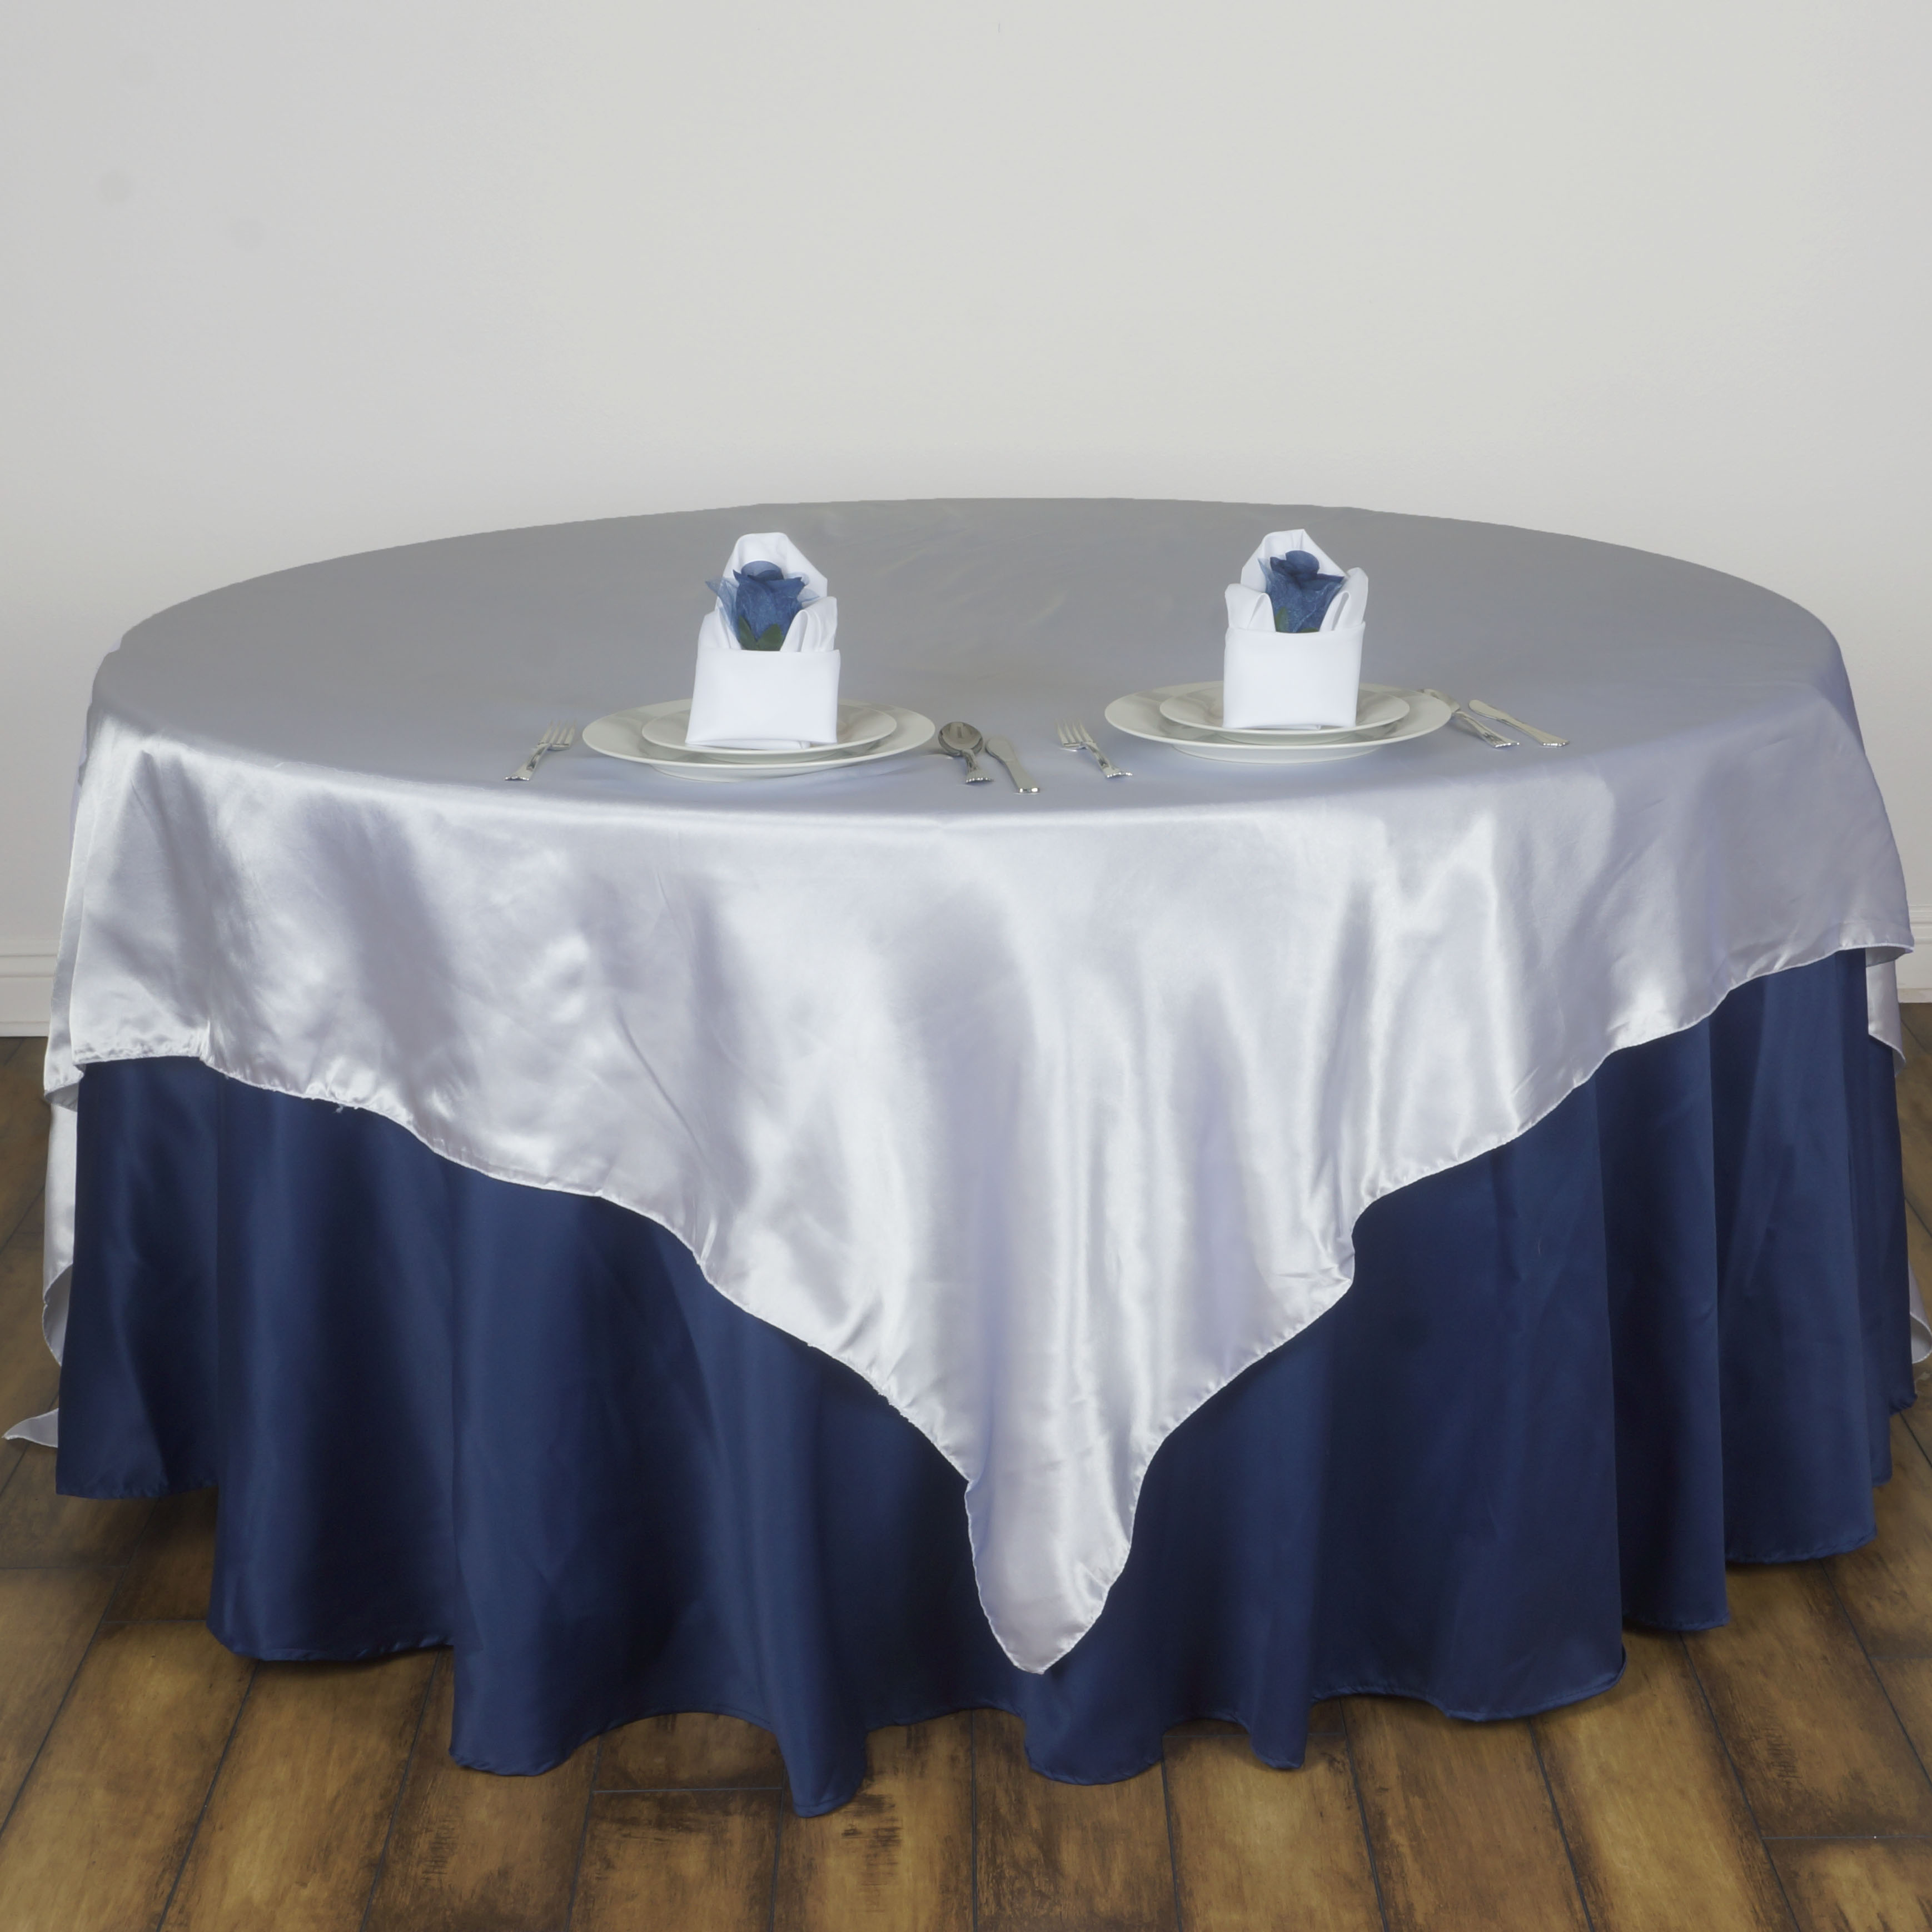 15 Pcs 72x72 034 Square SATIN Table Overlays